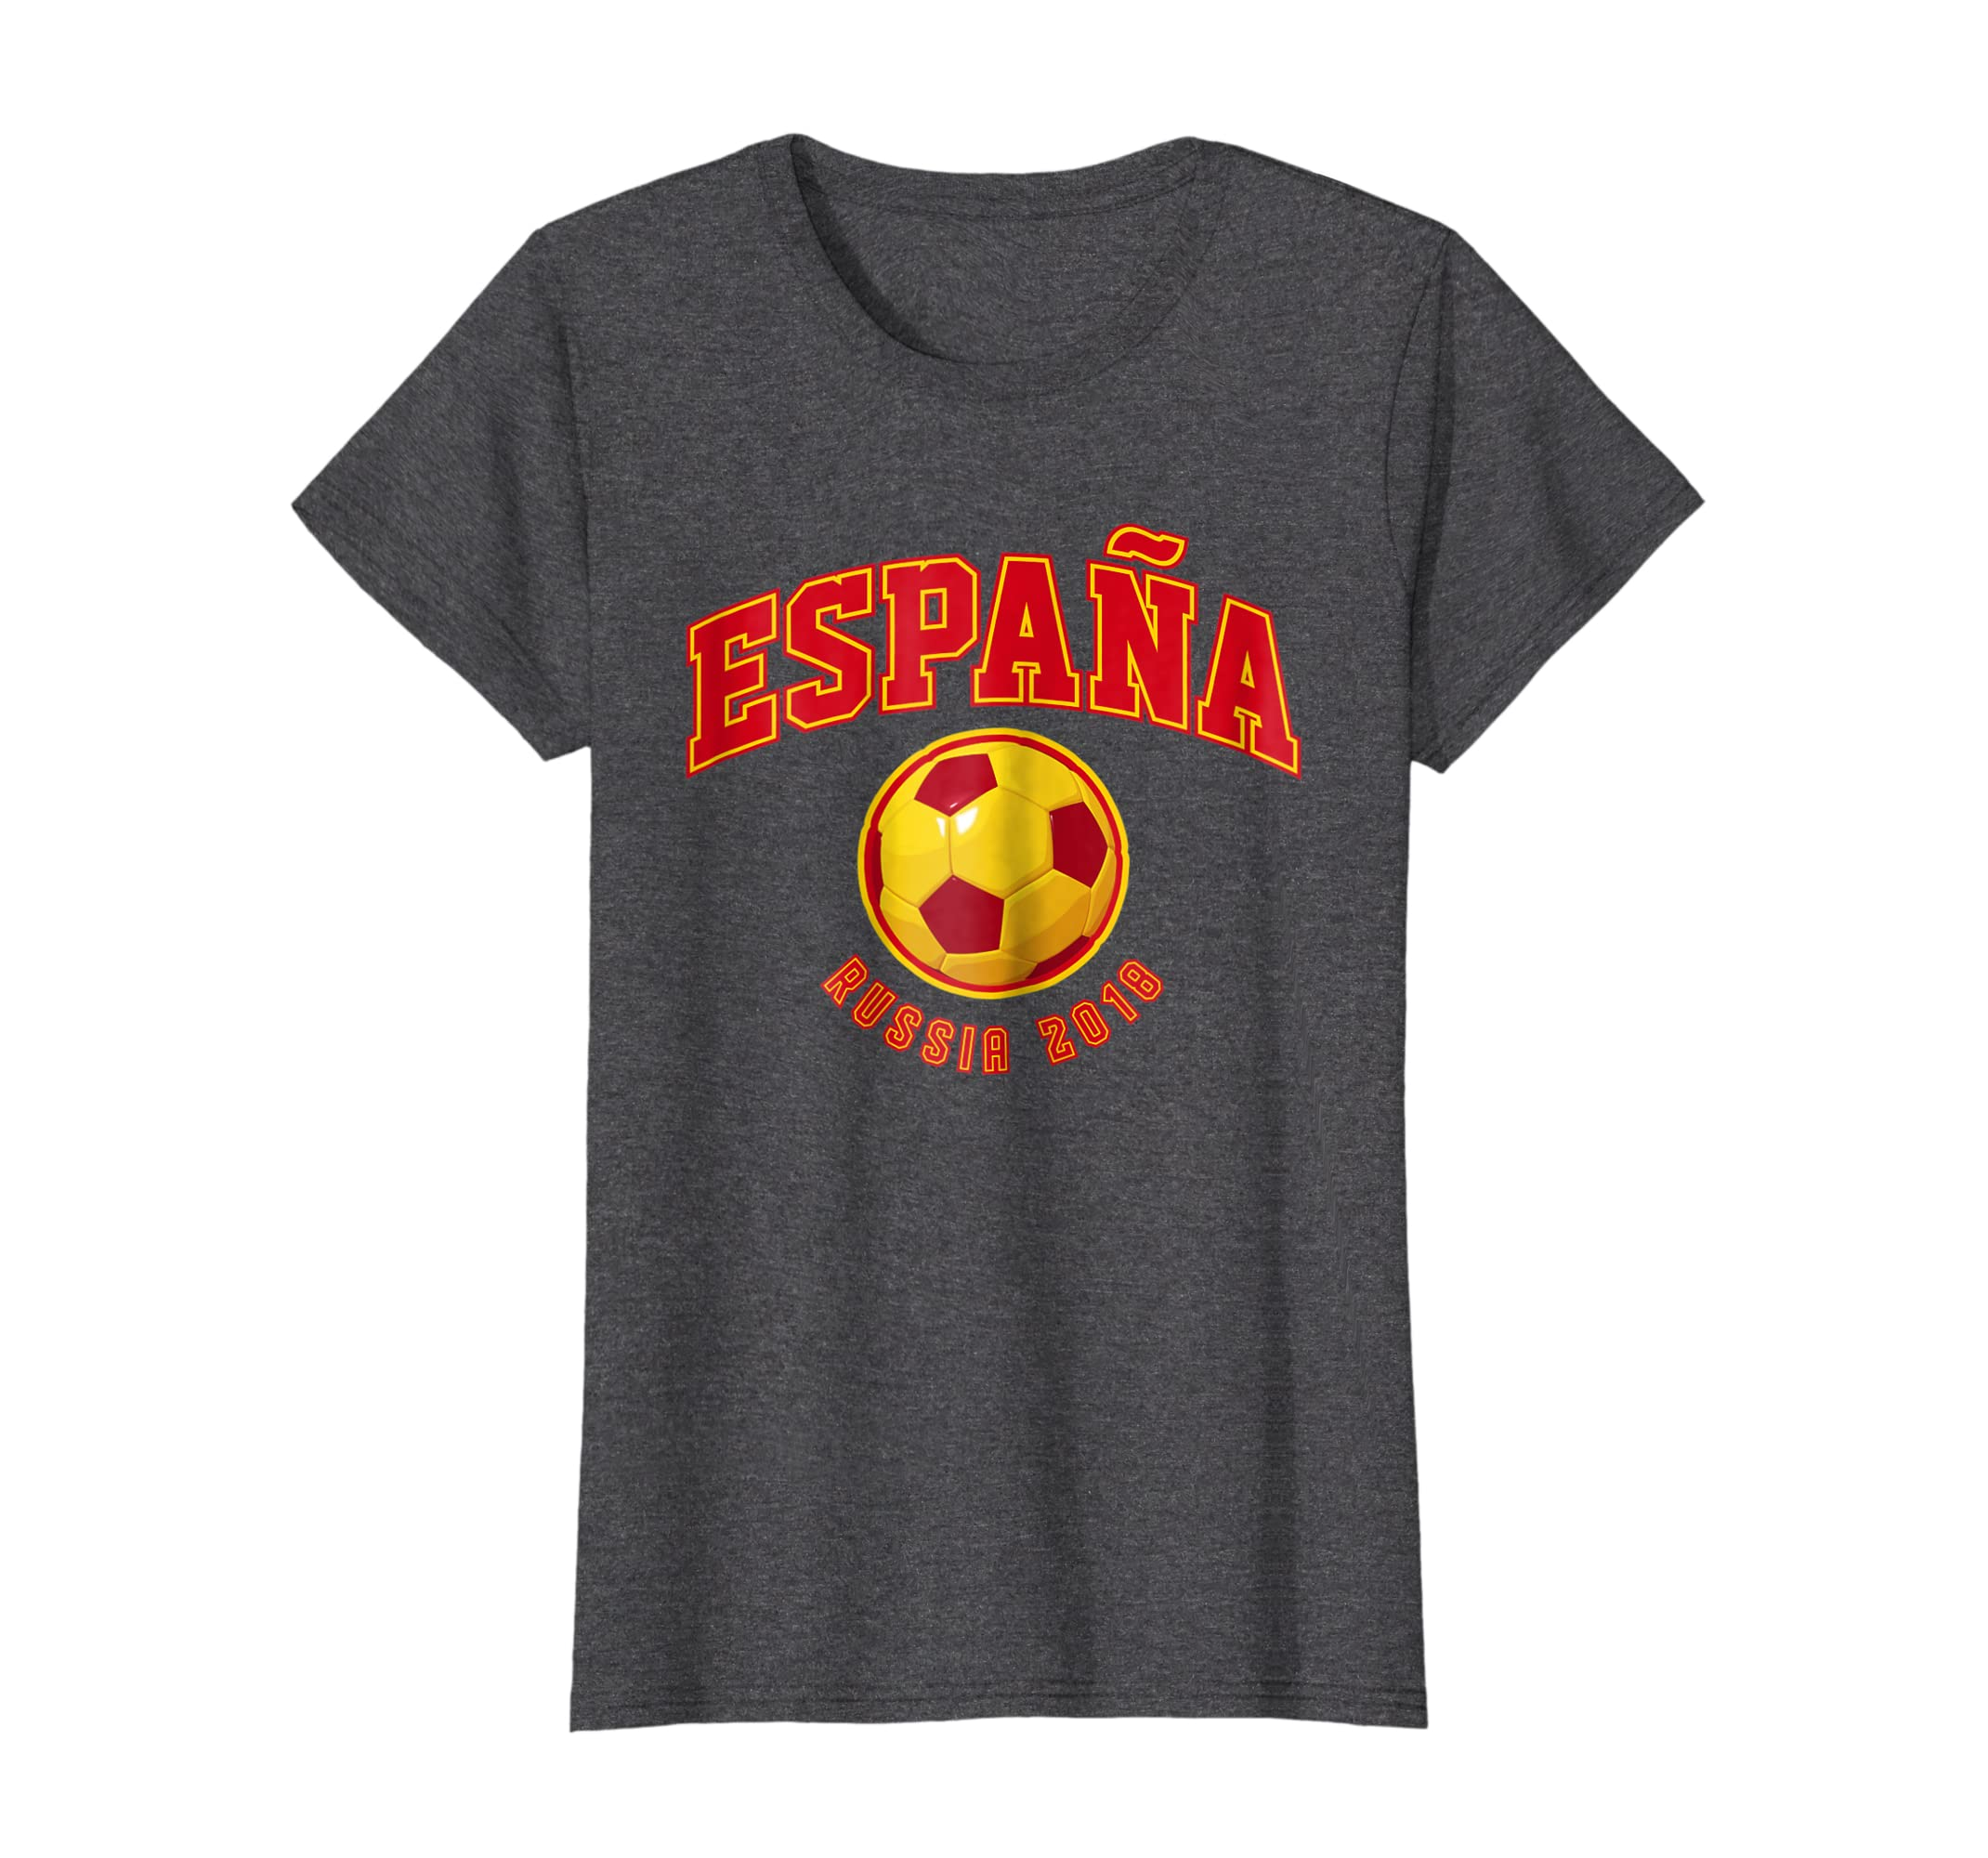 Amazon.com: Camiseta Futbol Espana 2018 World Soccer Team Cup Shirt: Clothing